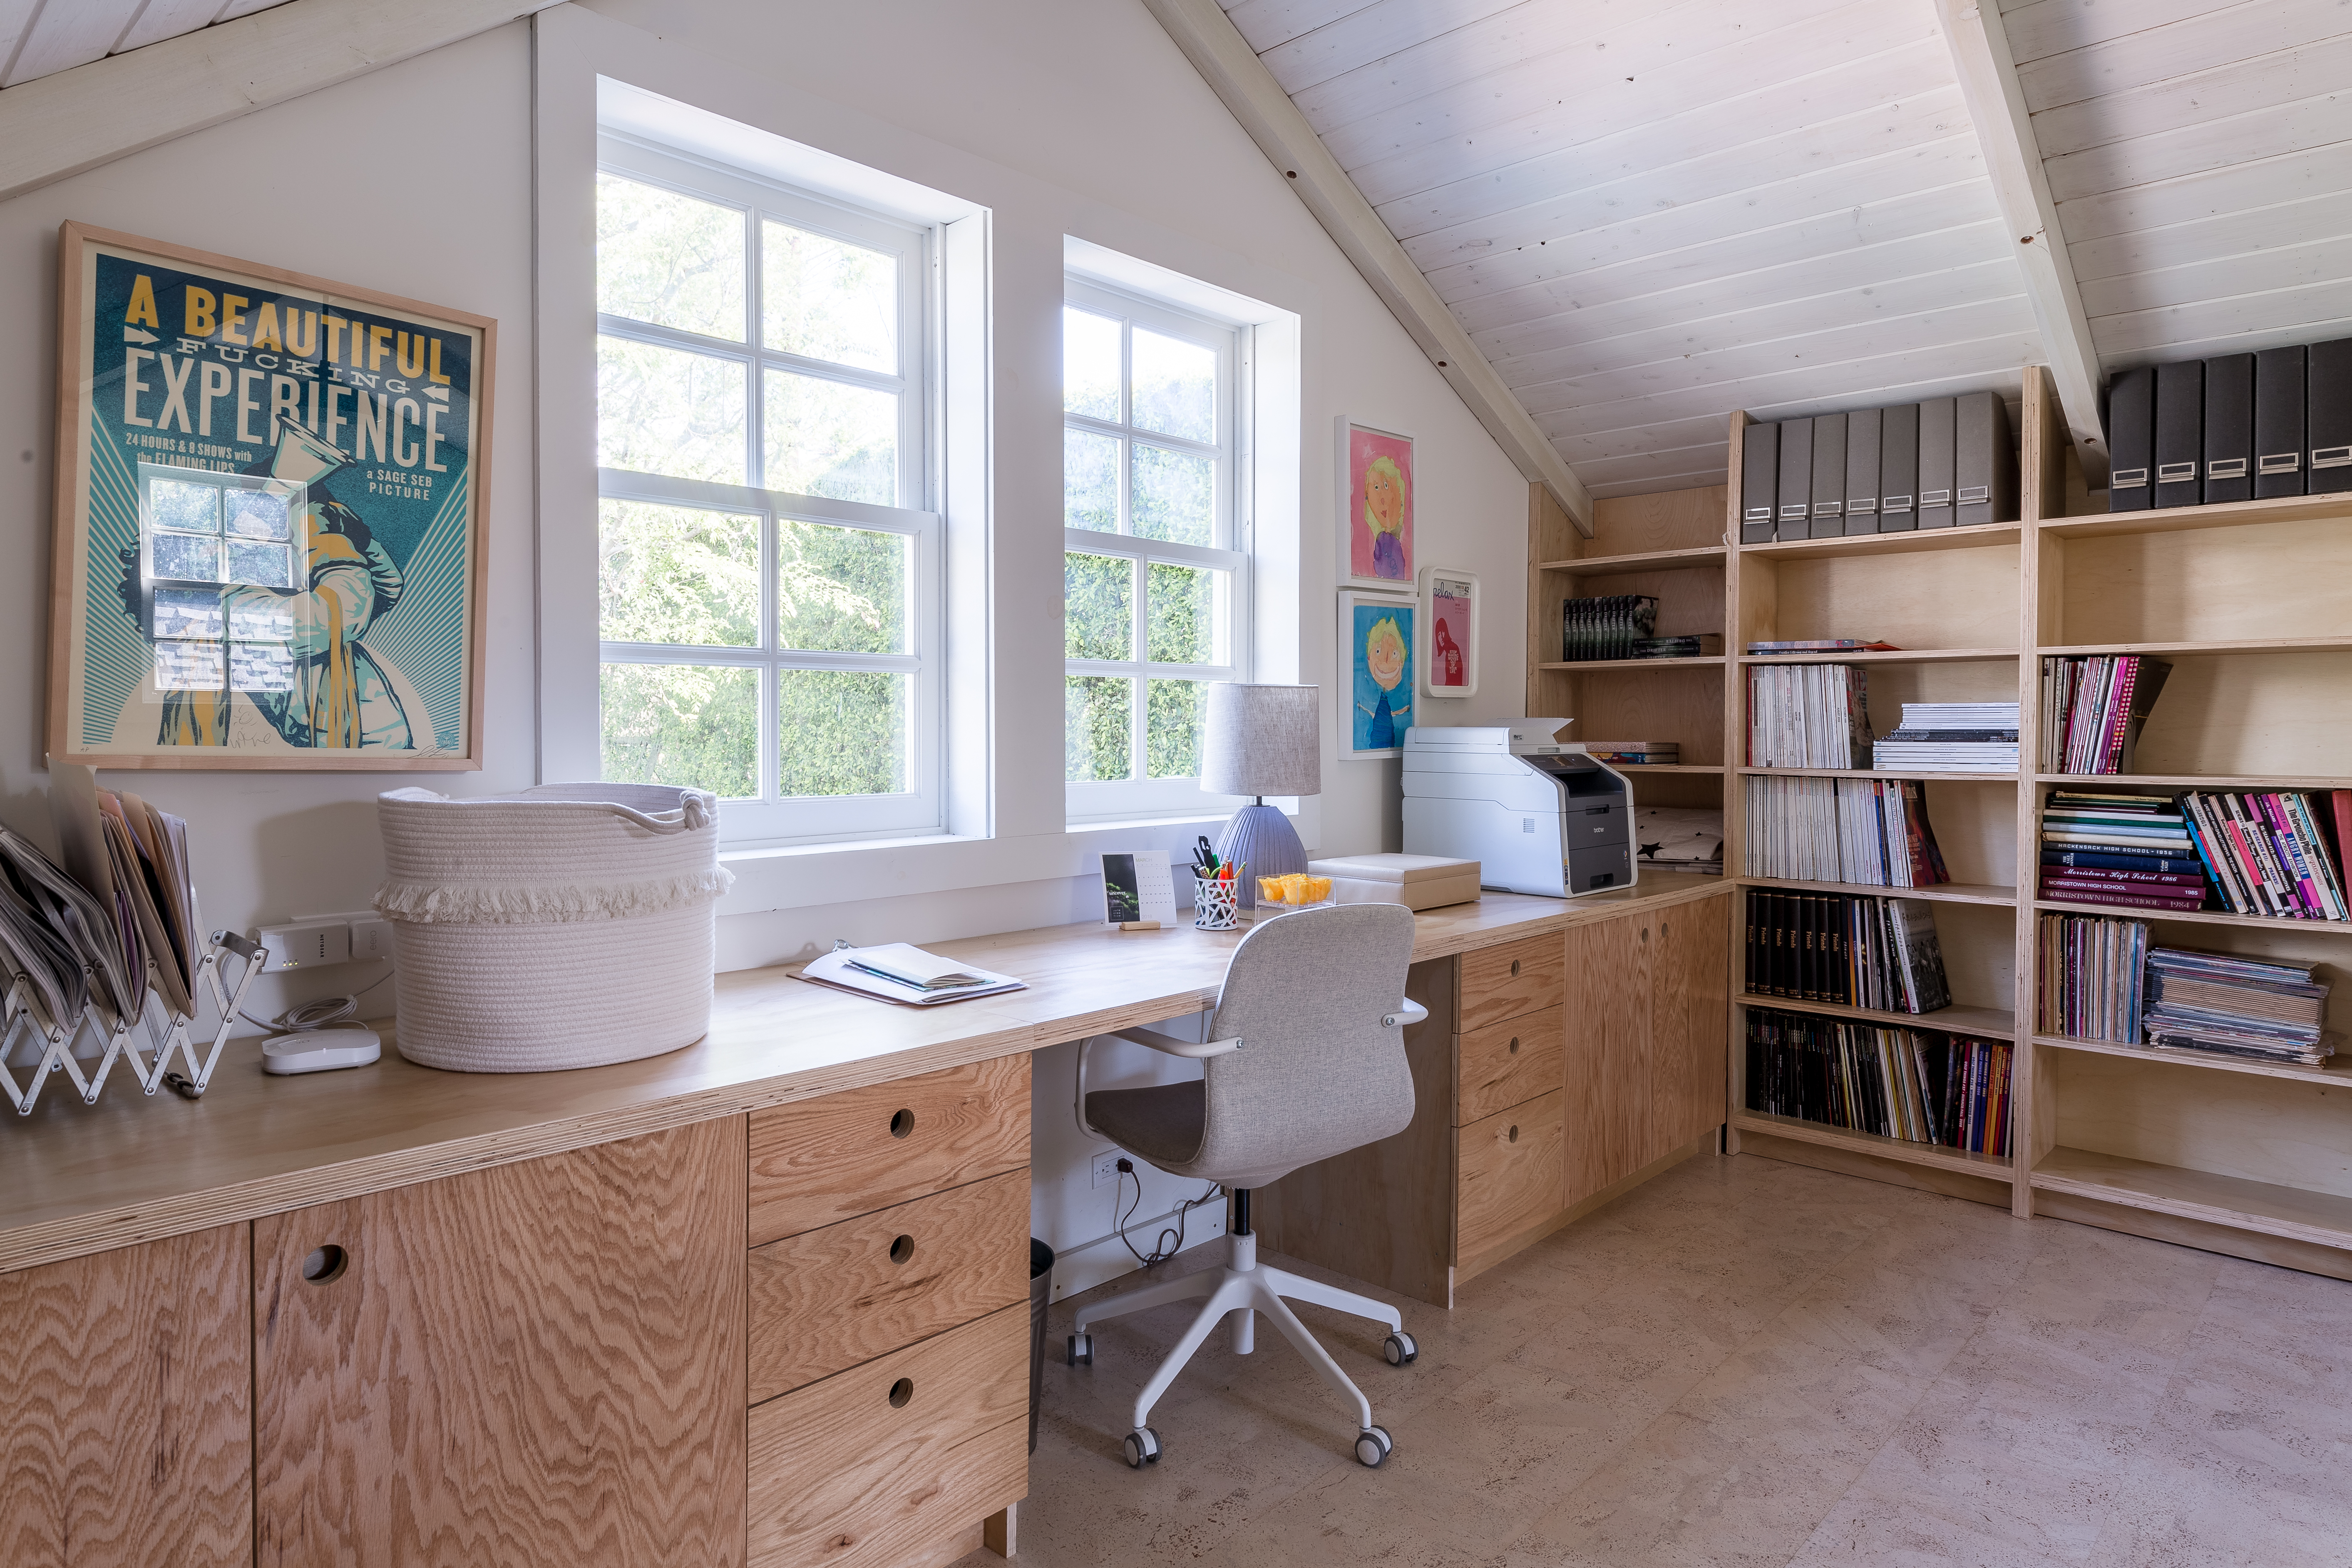 Architects Share 10 Ways to Increase Creativity in Your Home Workspace | Hunker